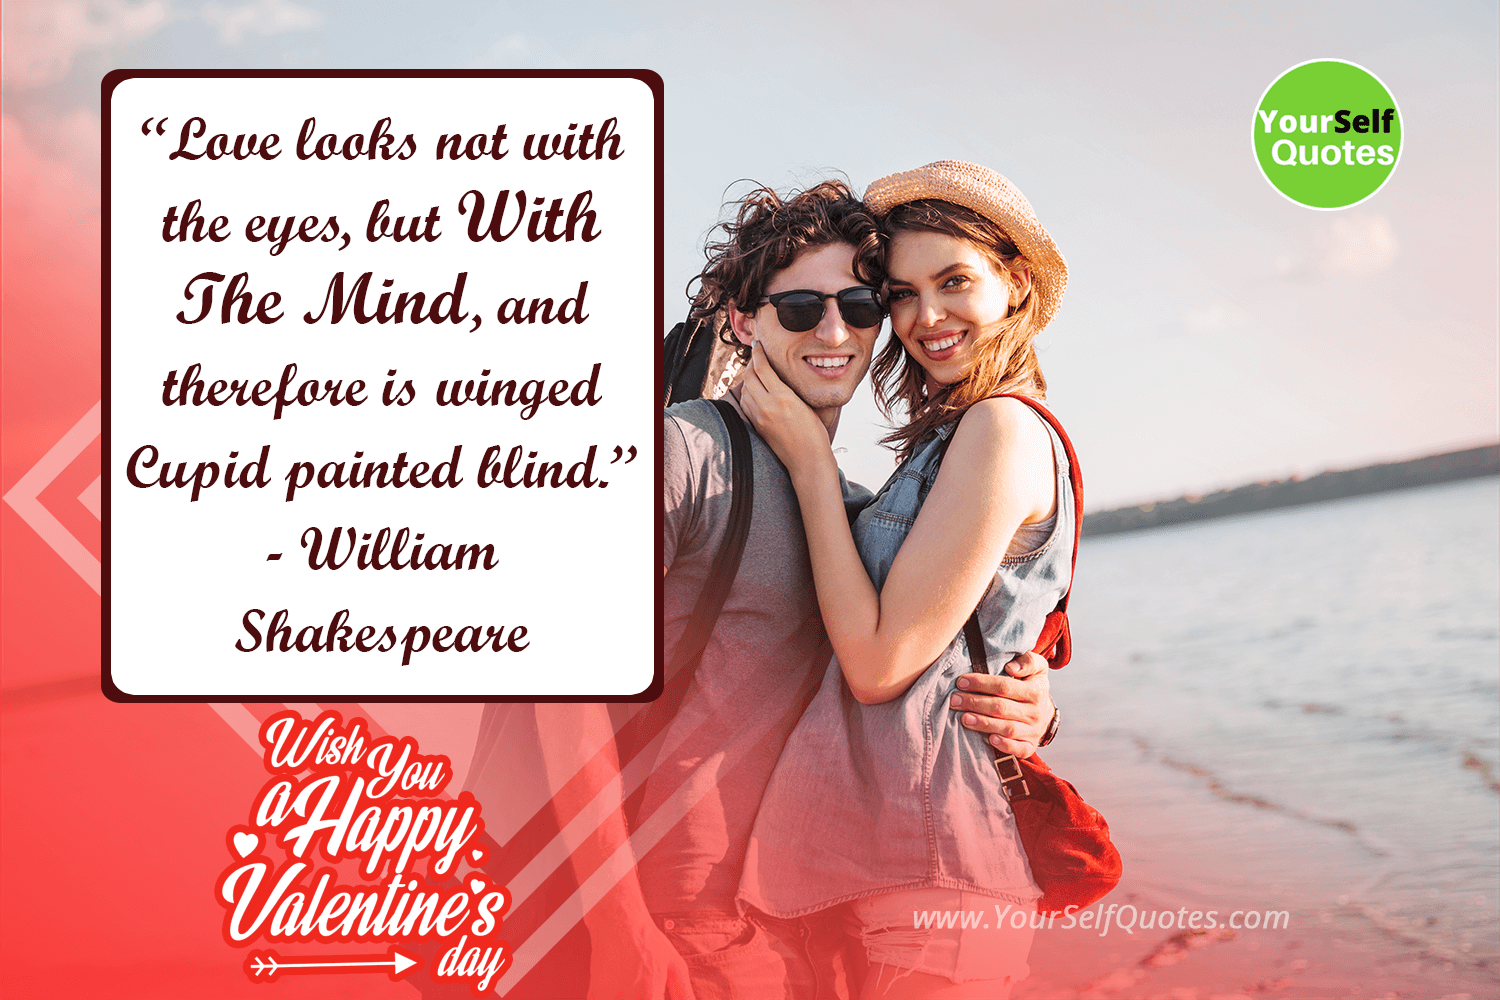 Valentine Day Quotes Images by William Shakespeare